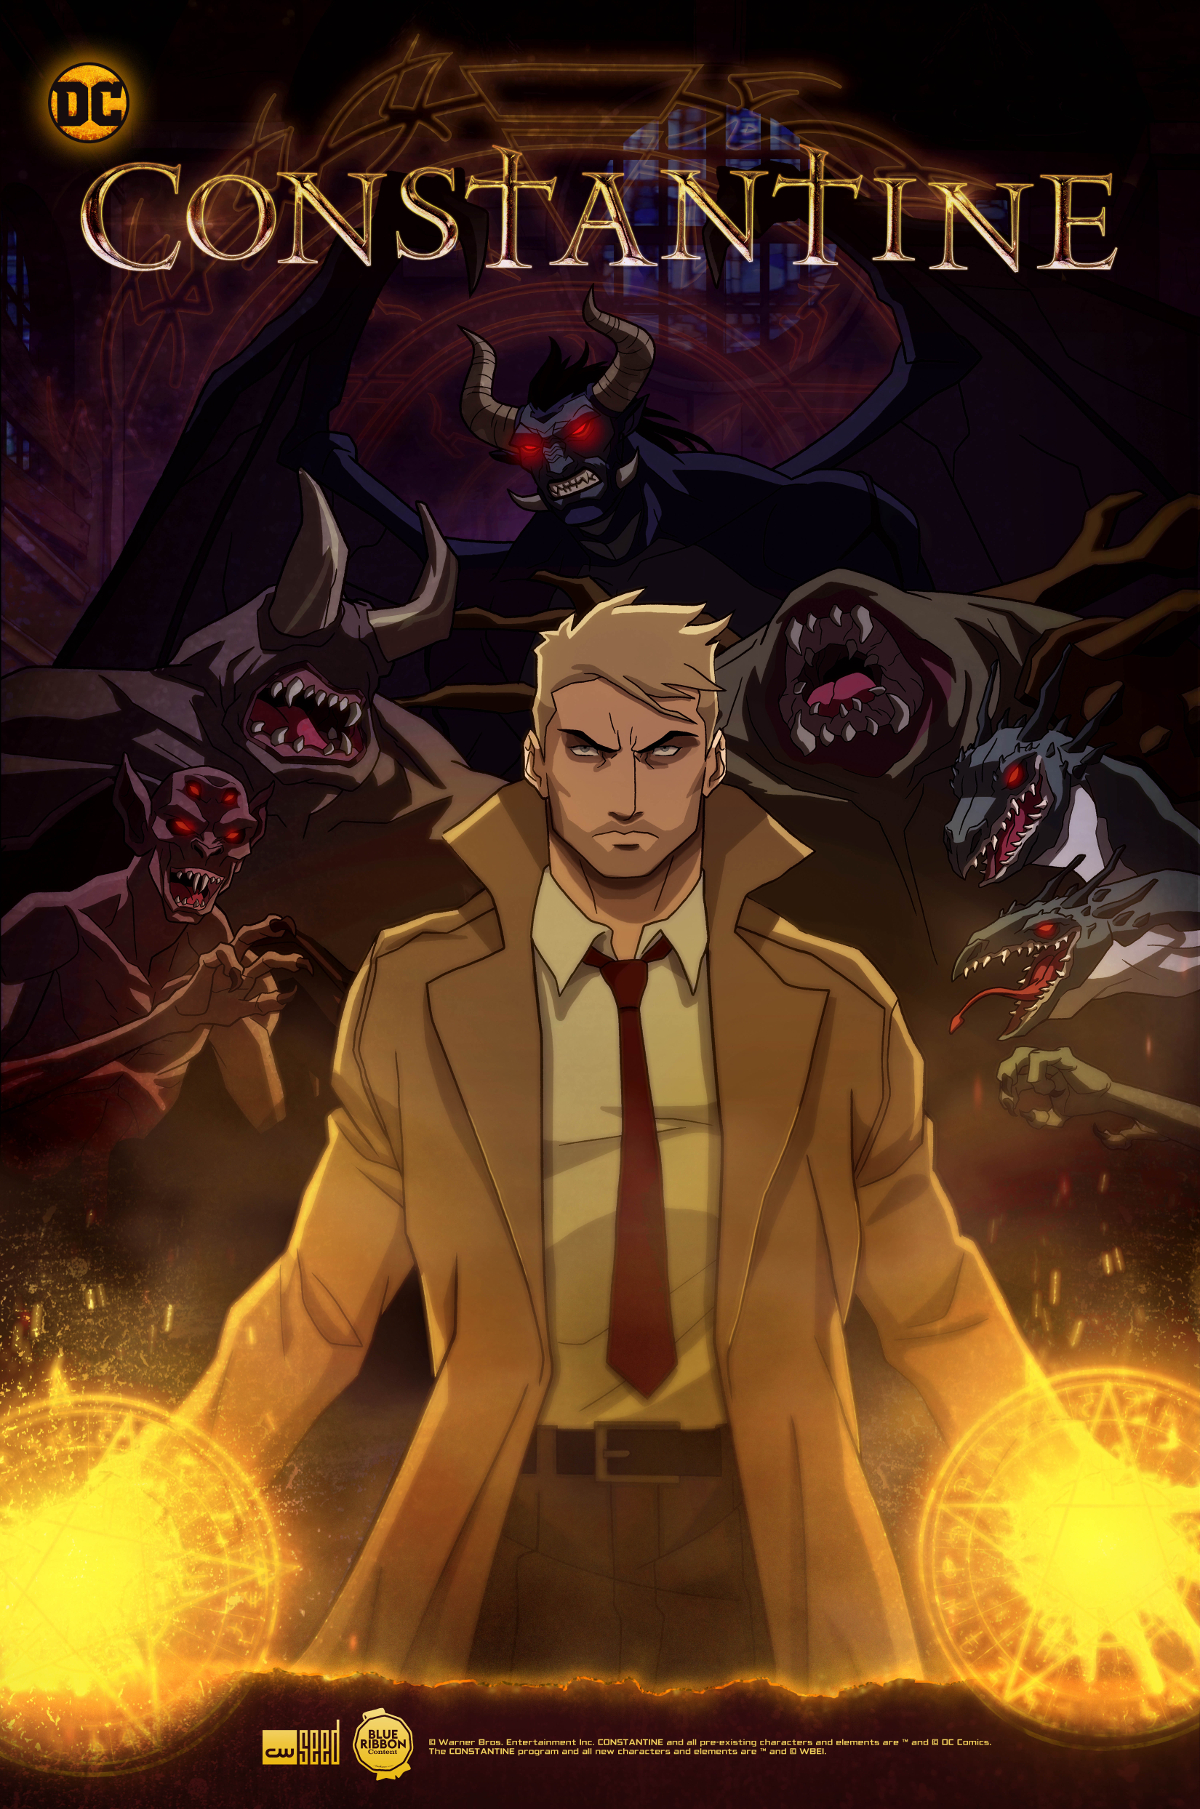 poster-unveiled-for-the-constantine-animated-series1